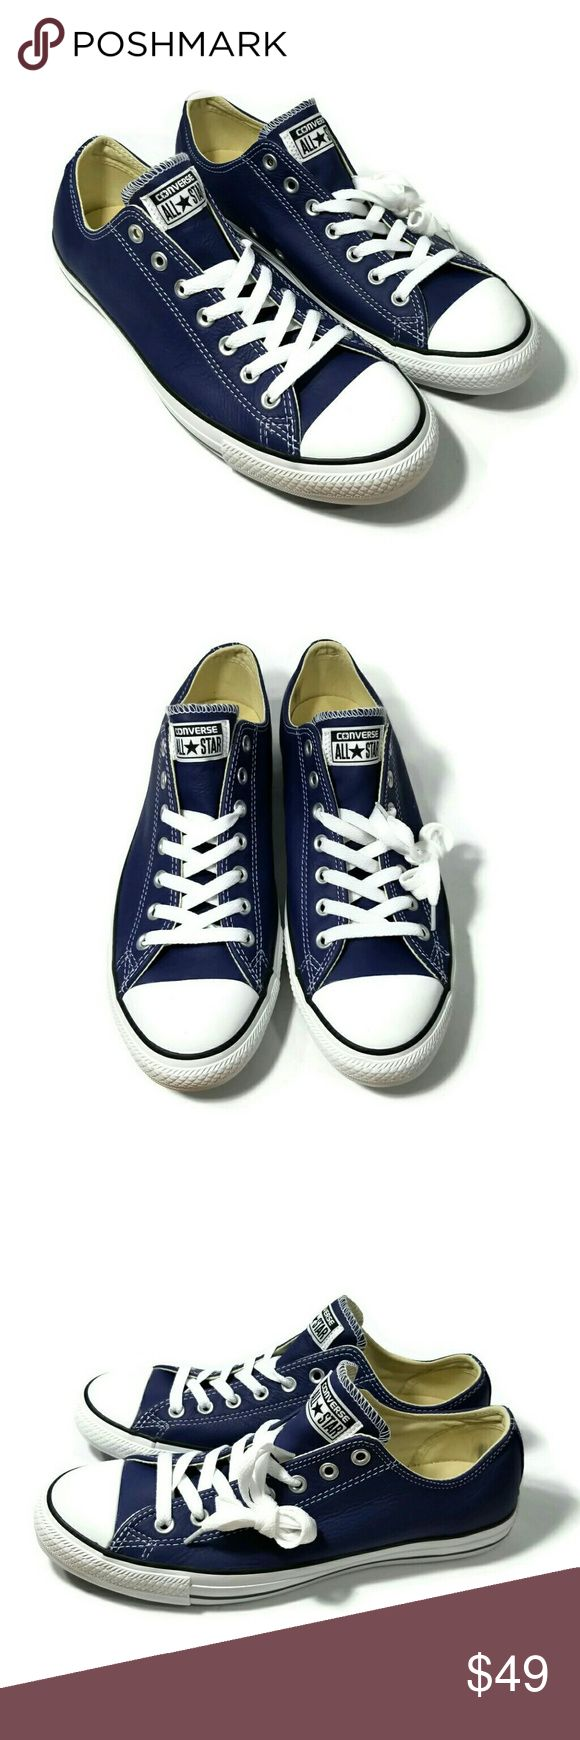 New Leather Converse All Star New without box. Unisex. Size 10 for mens. Size 12 for womens. Leather. ♣️ Converse Shoes Sneakers